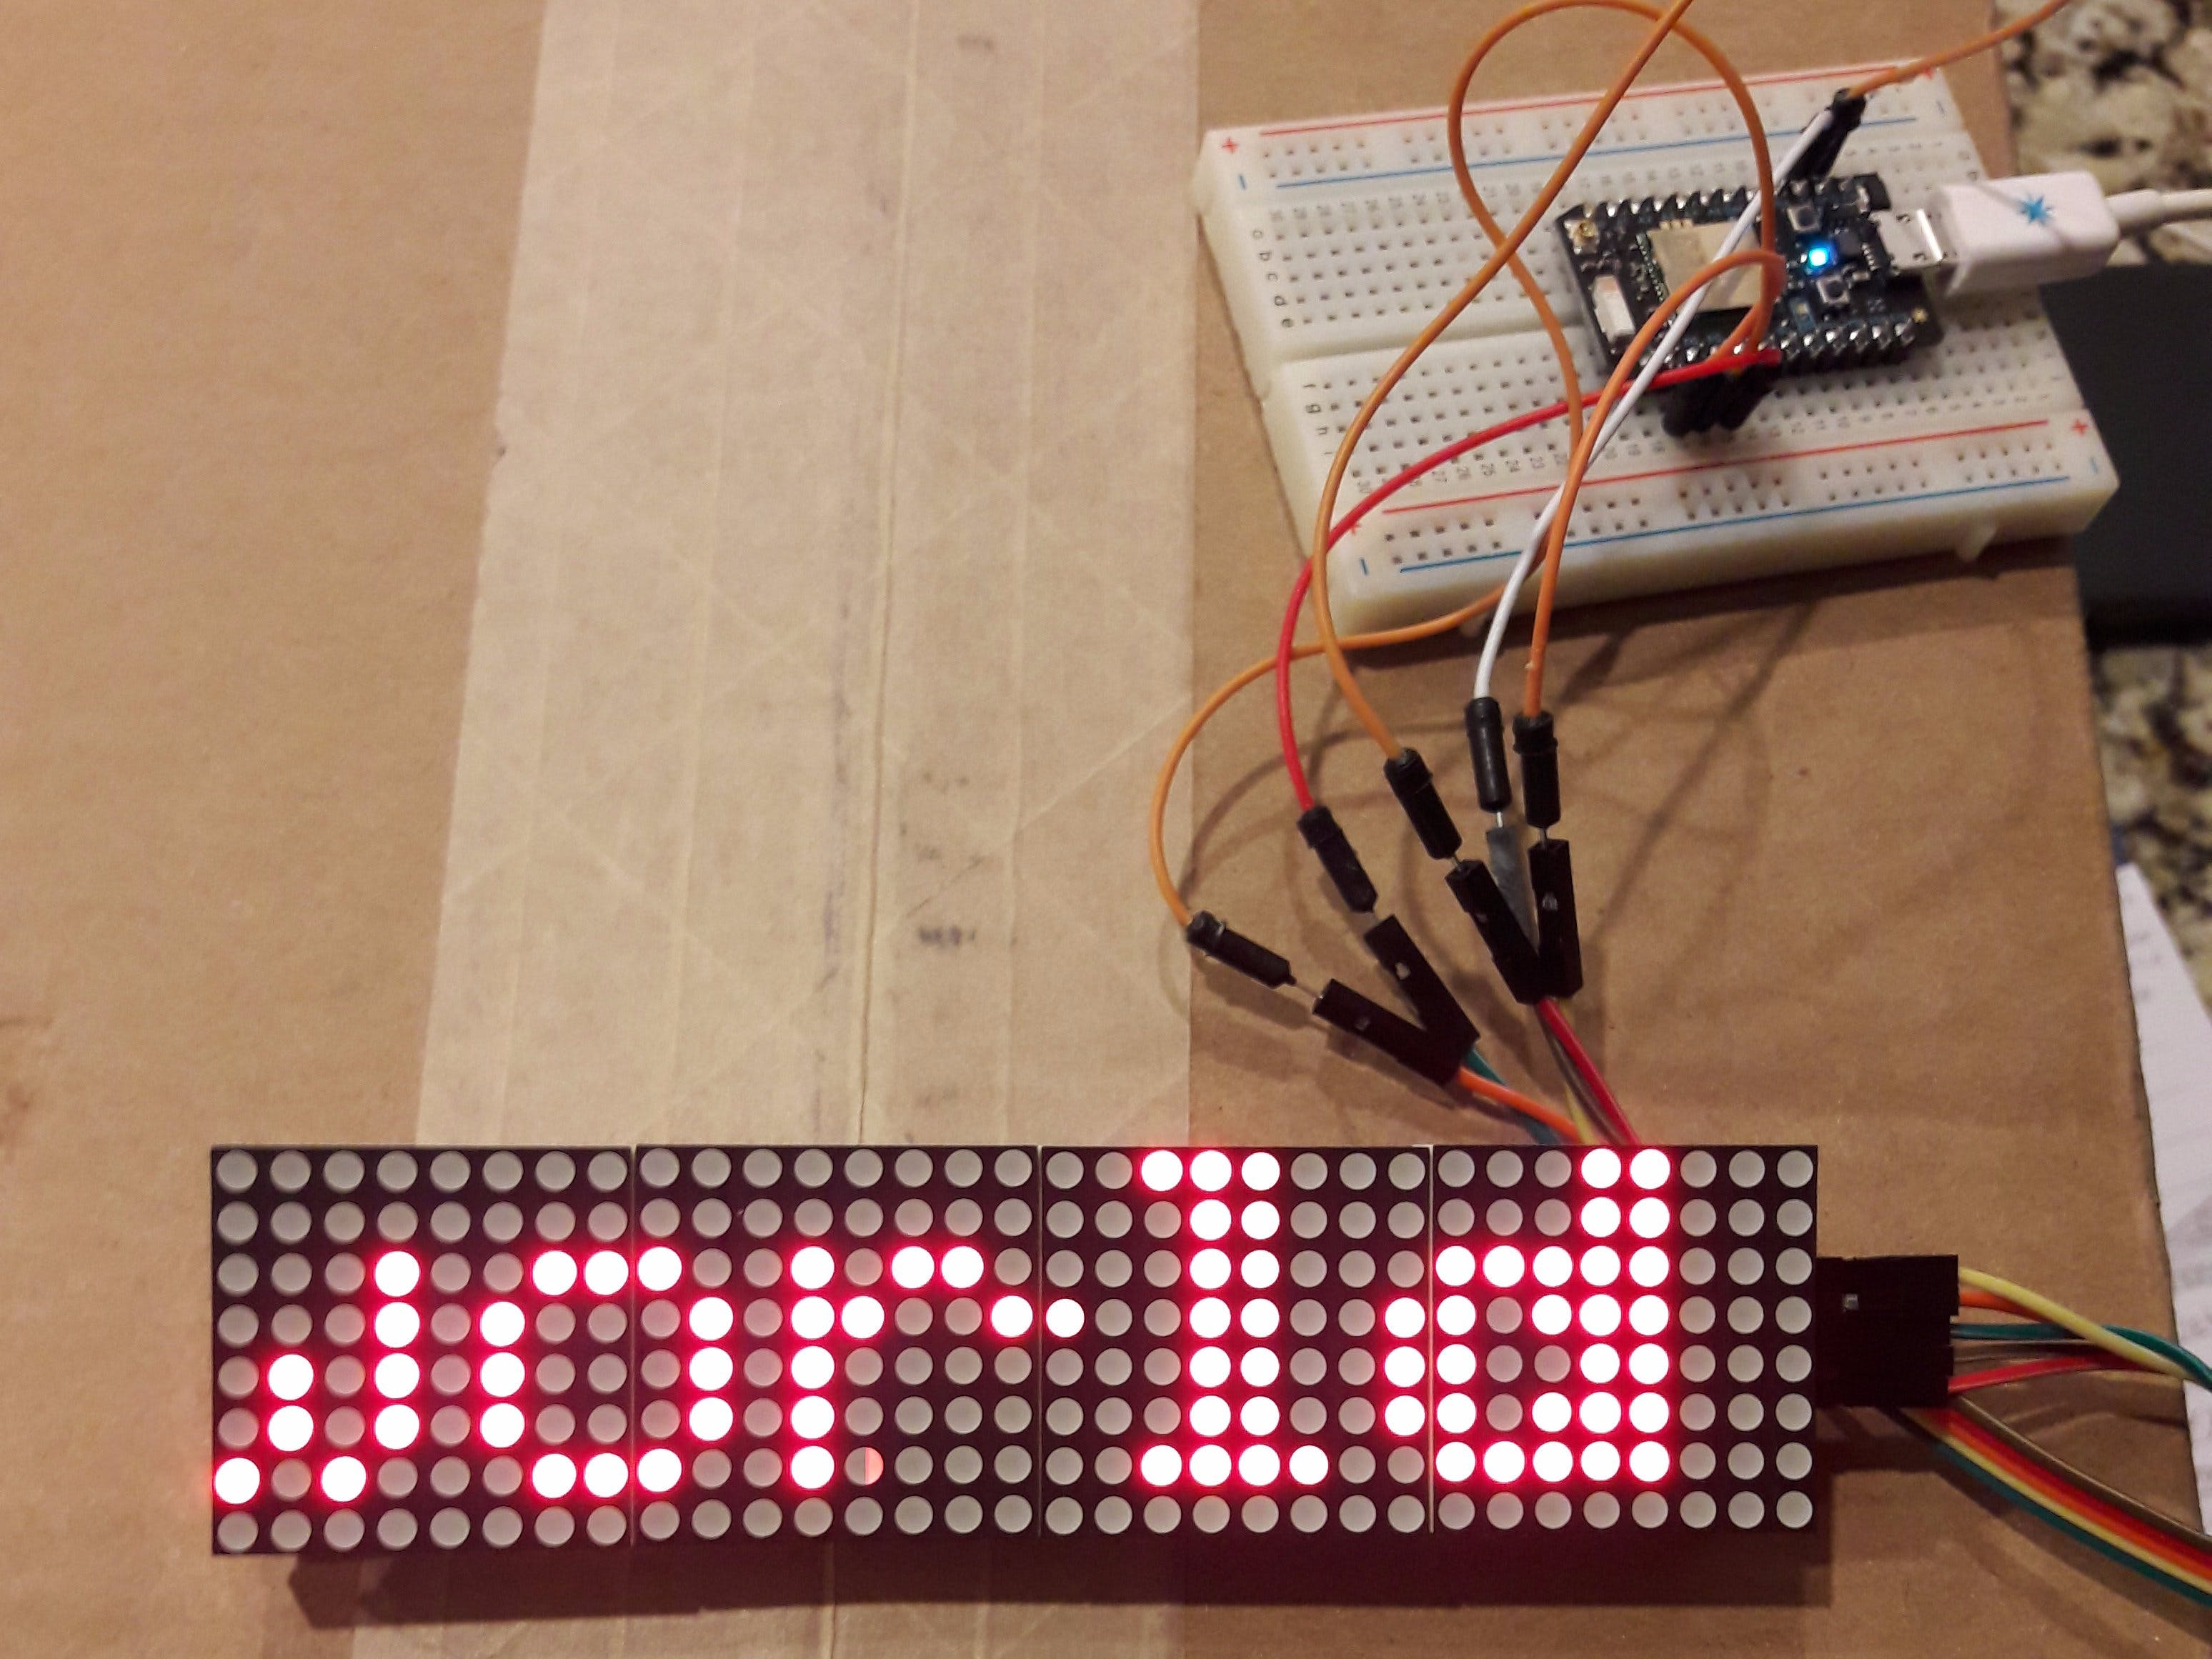 Smart LED Matrix for Particle Photon